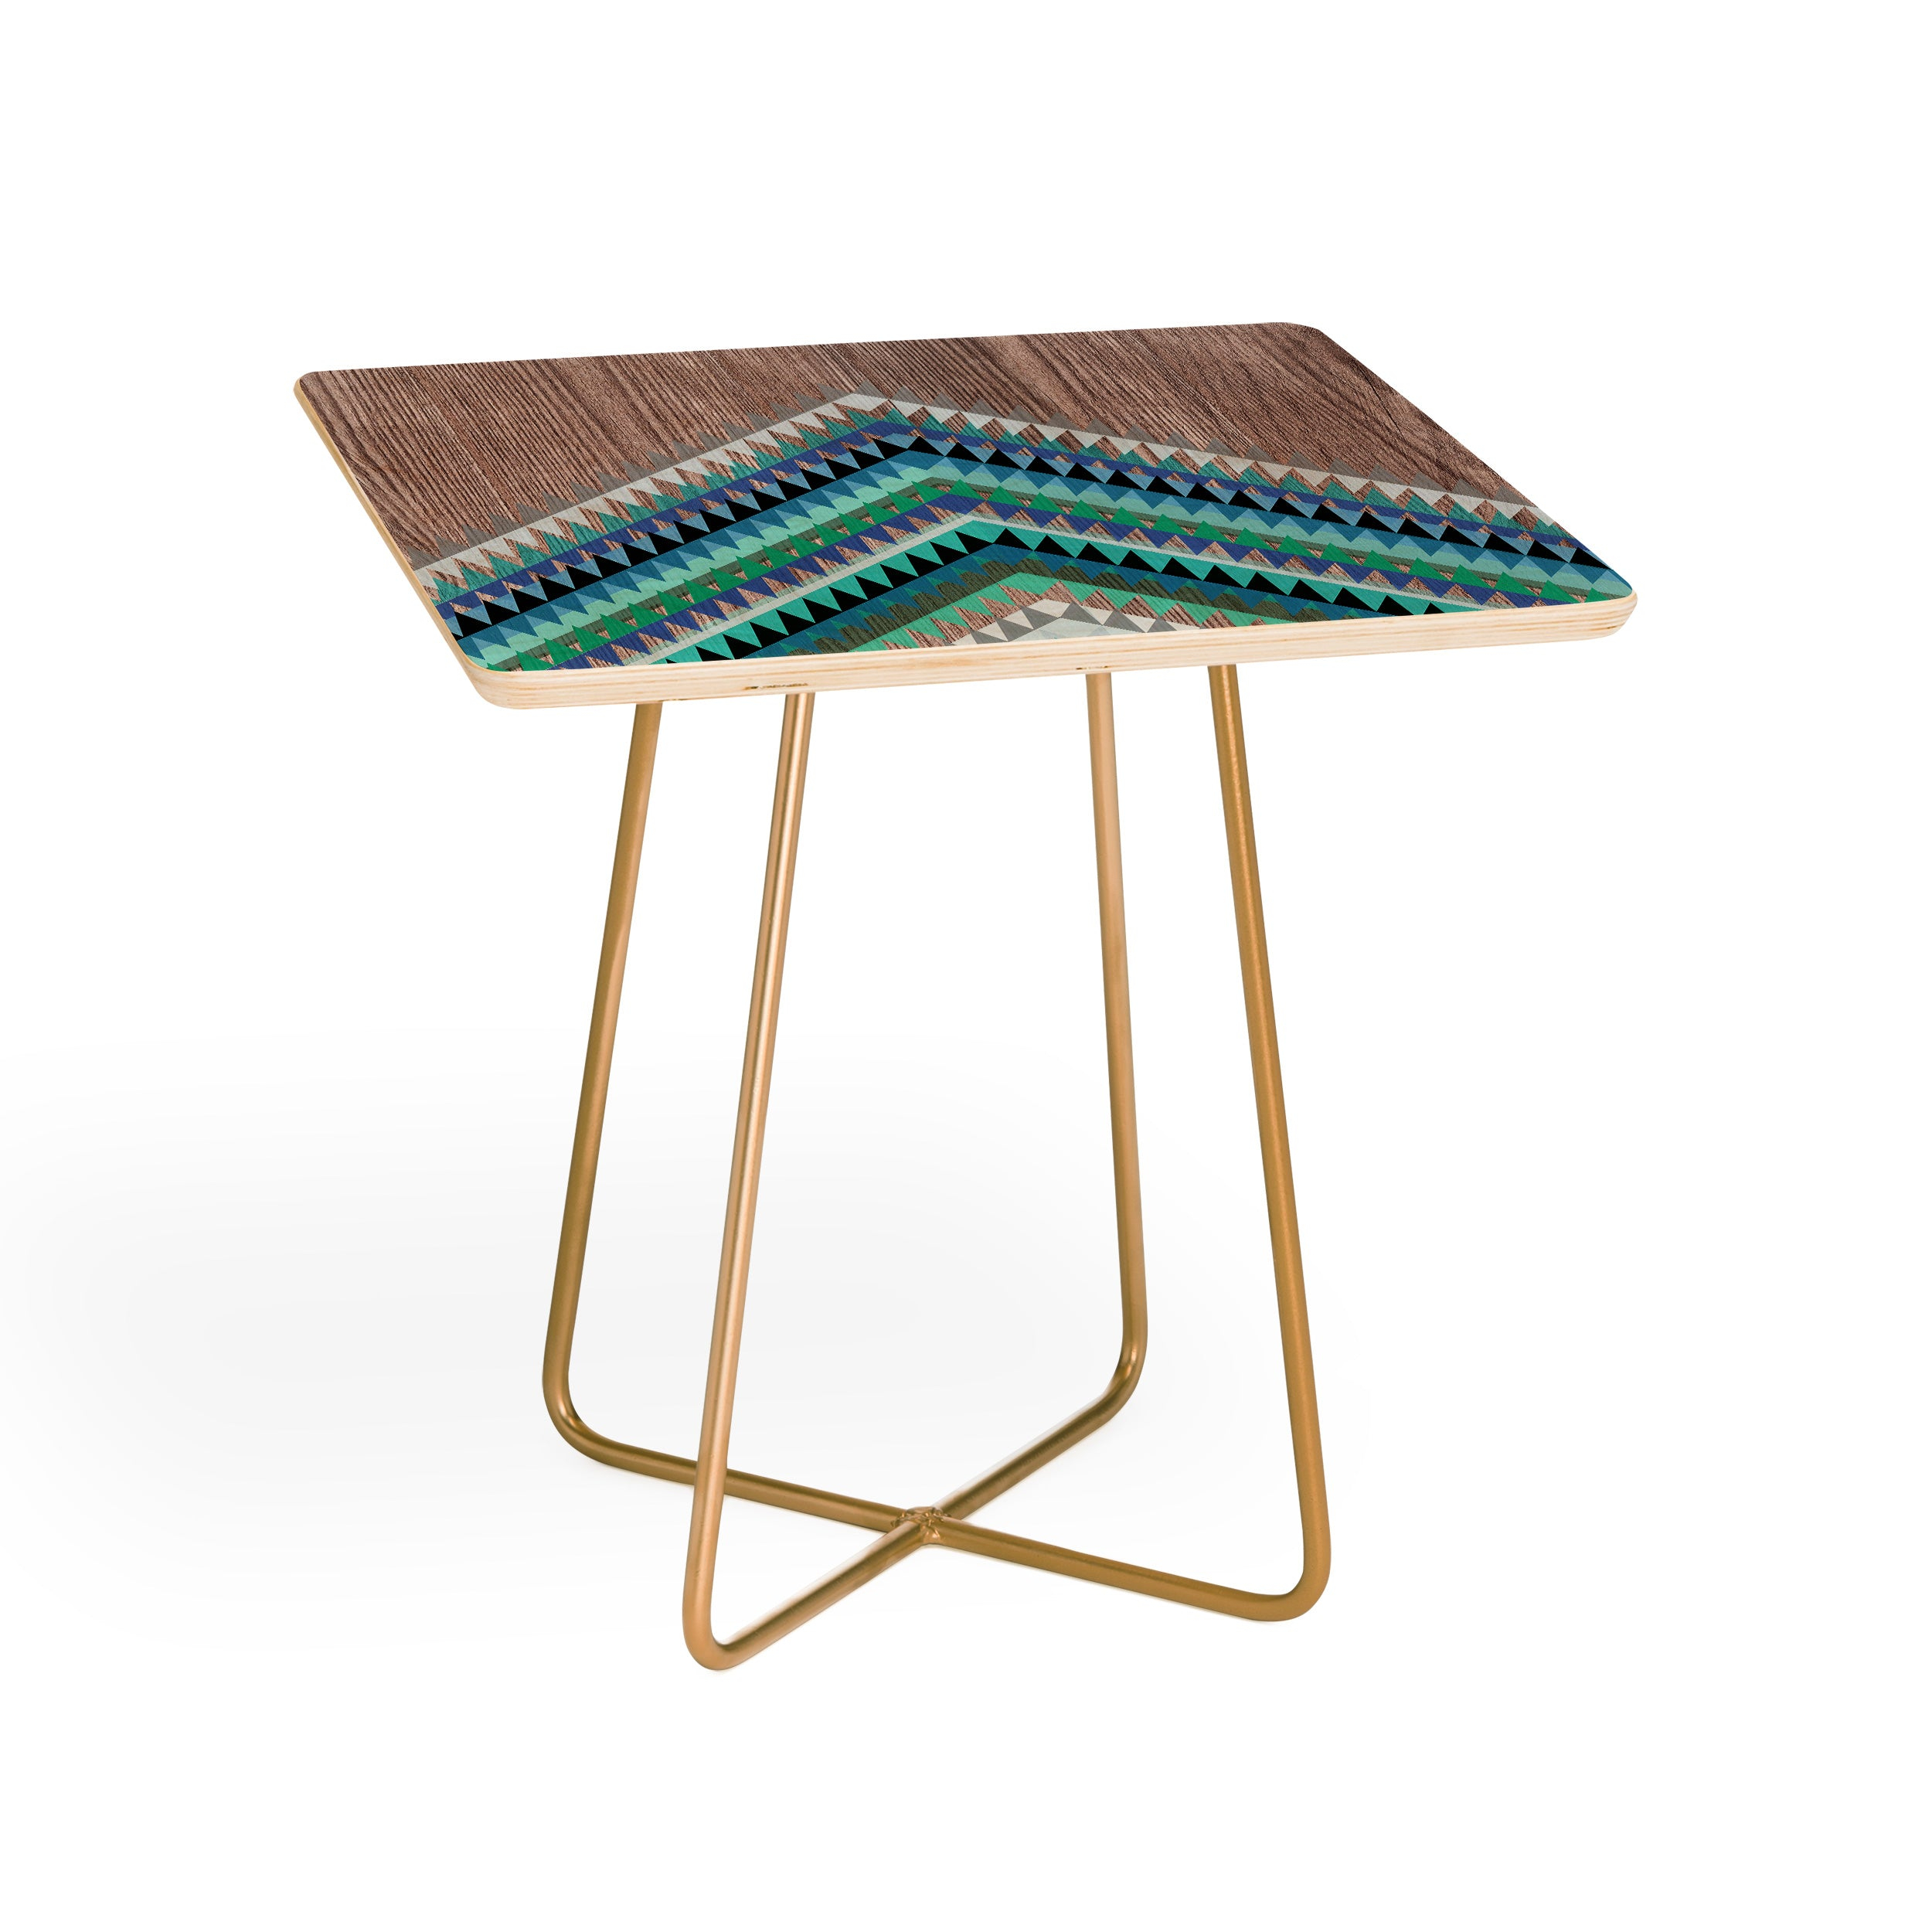 Iveta Abolina High Tide Side Table